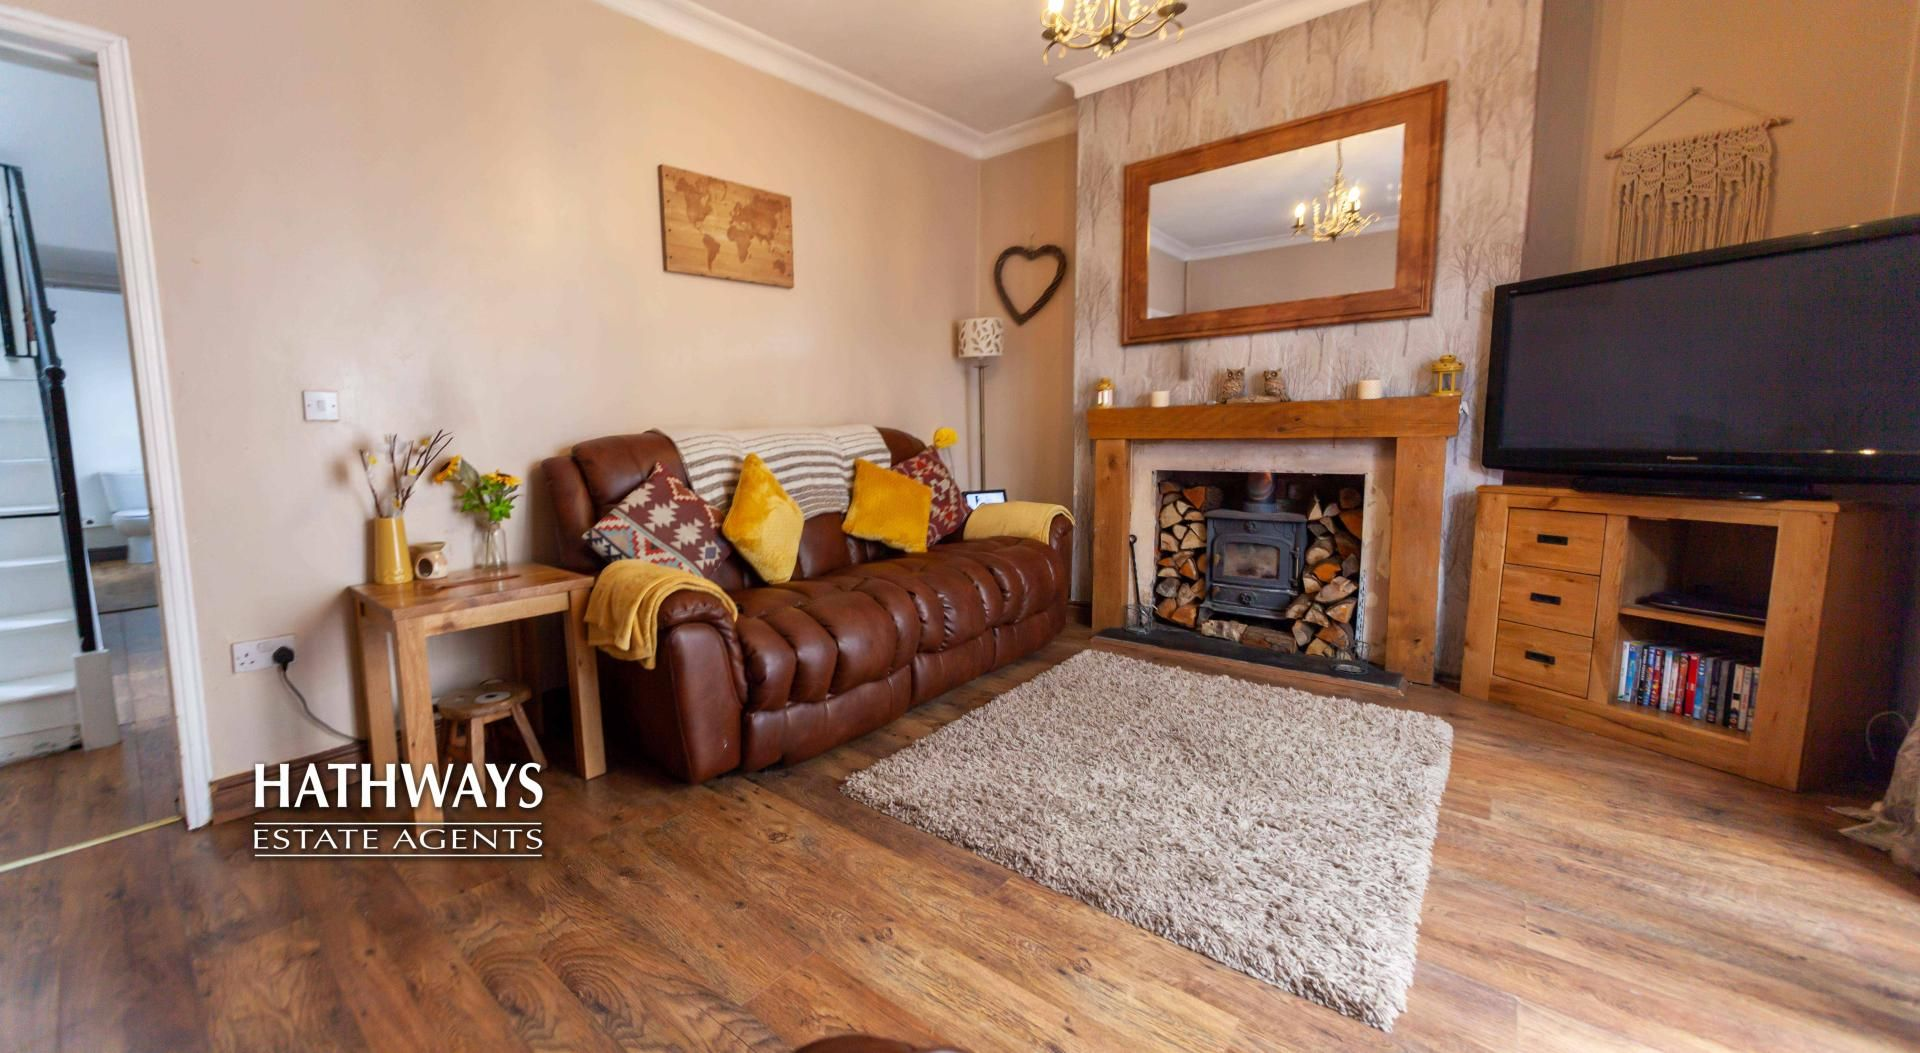 3 bed house for sale in Gladstone Place - Property Image 1